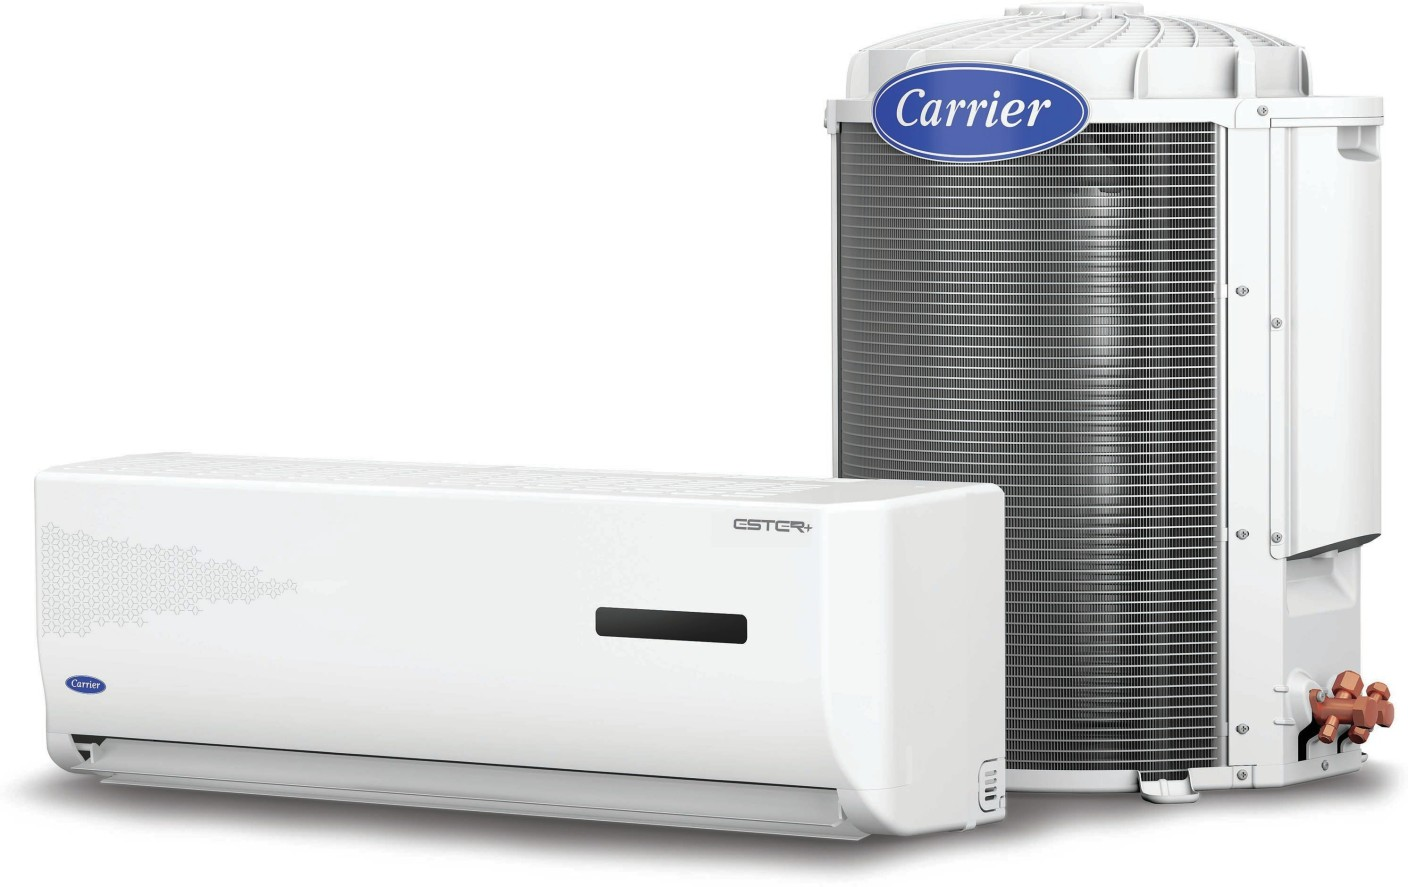 Buy carrier 1 2 ton 5 star bee rating 2017 for 2 ton window ac 5 star rating